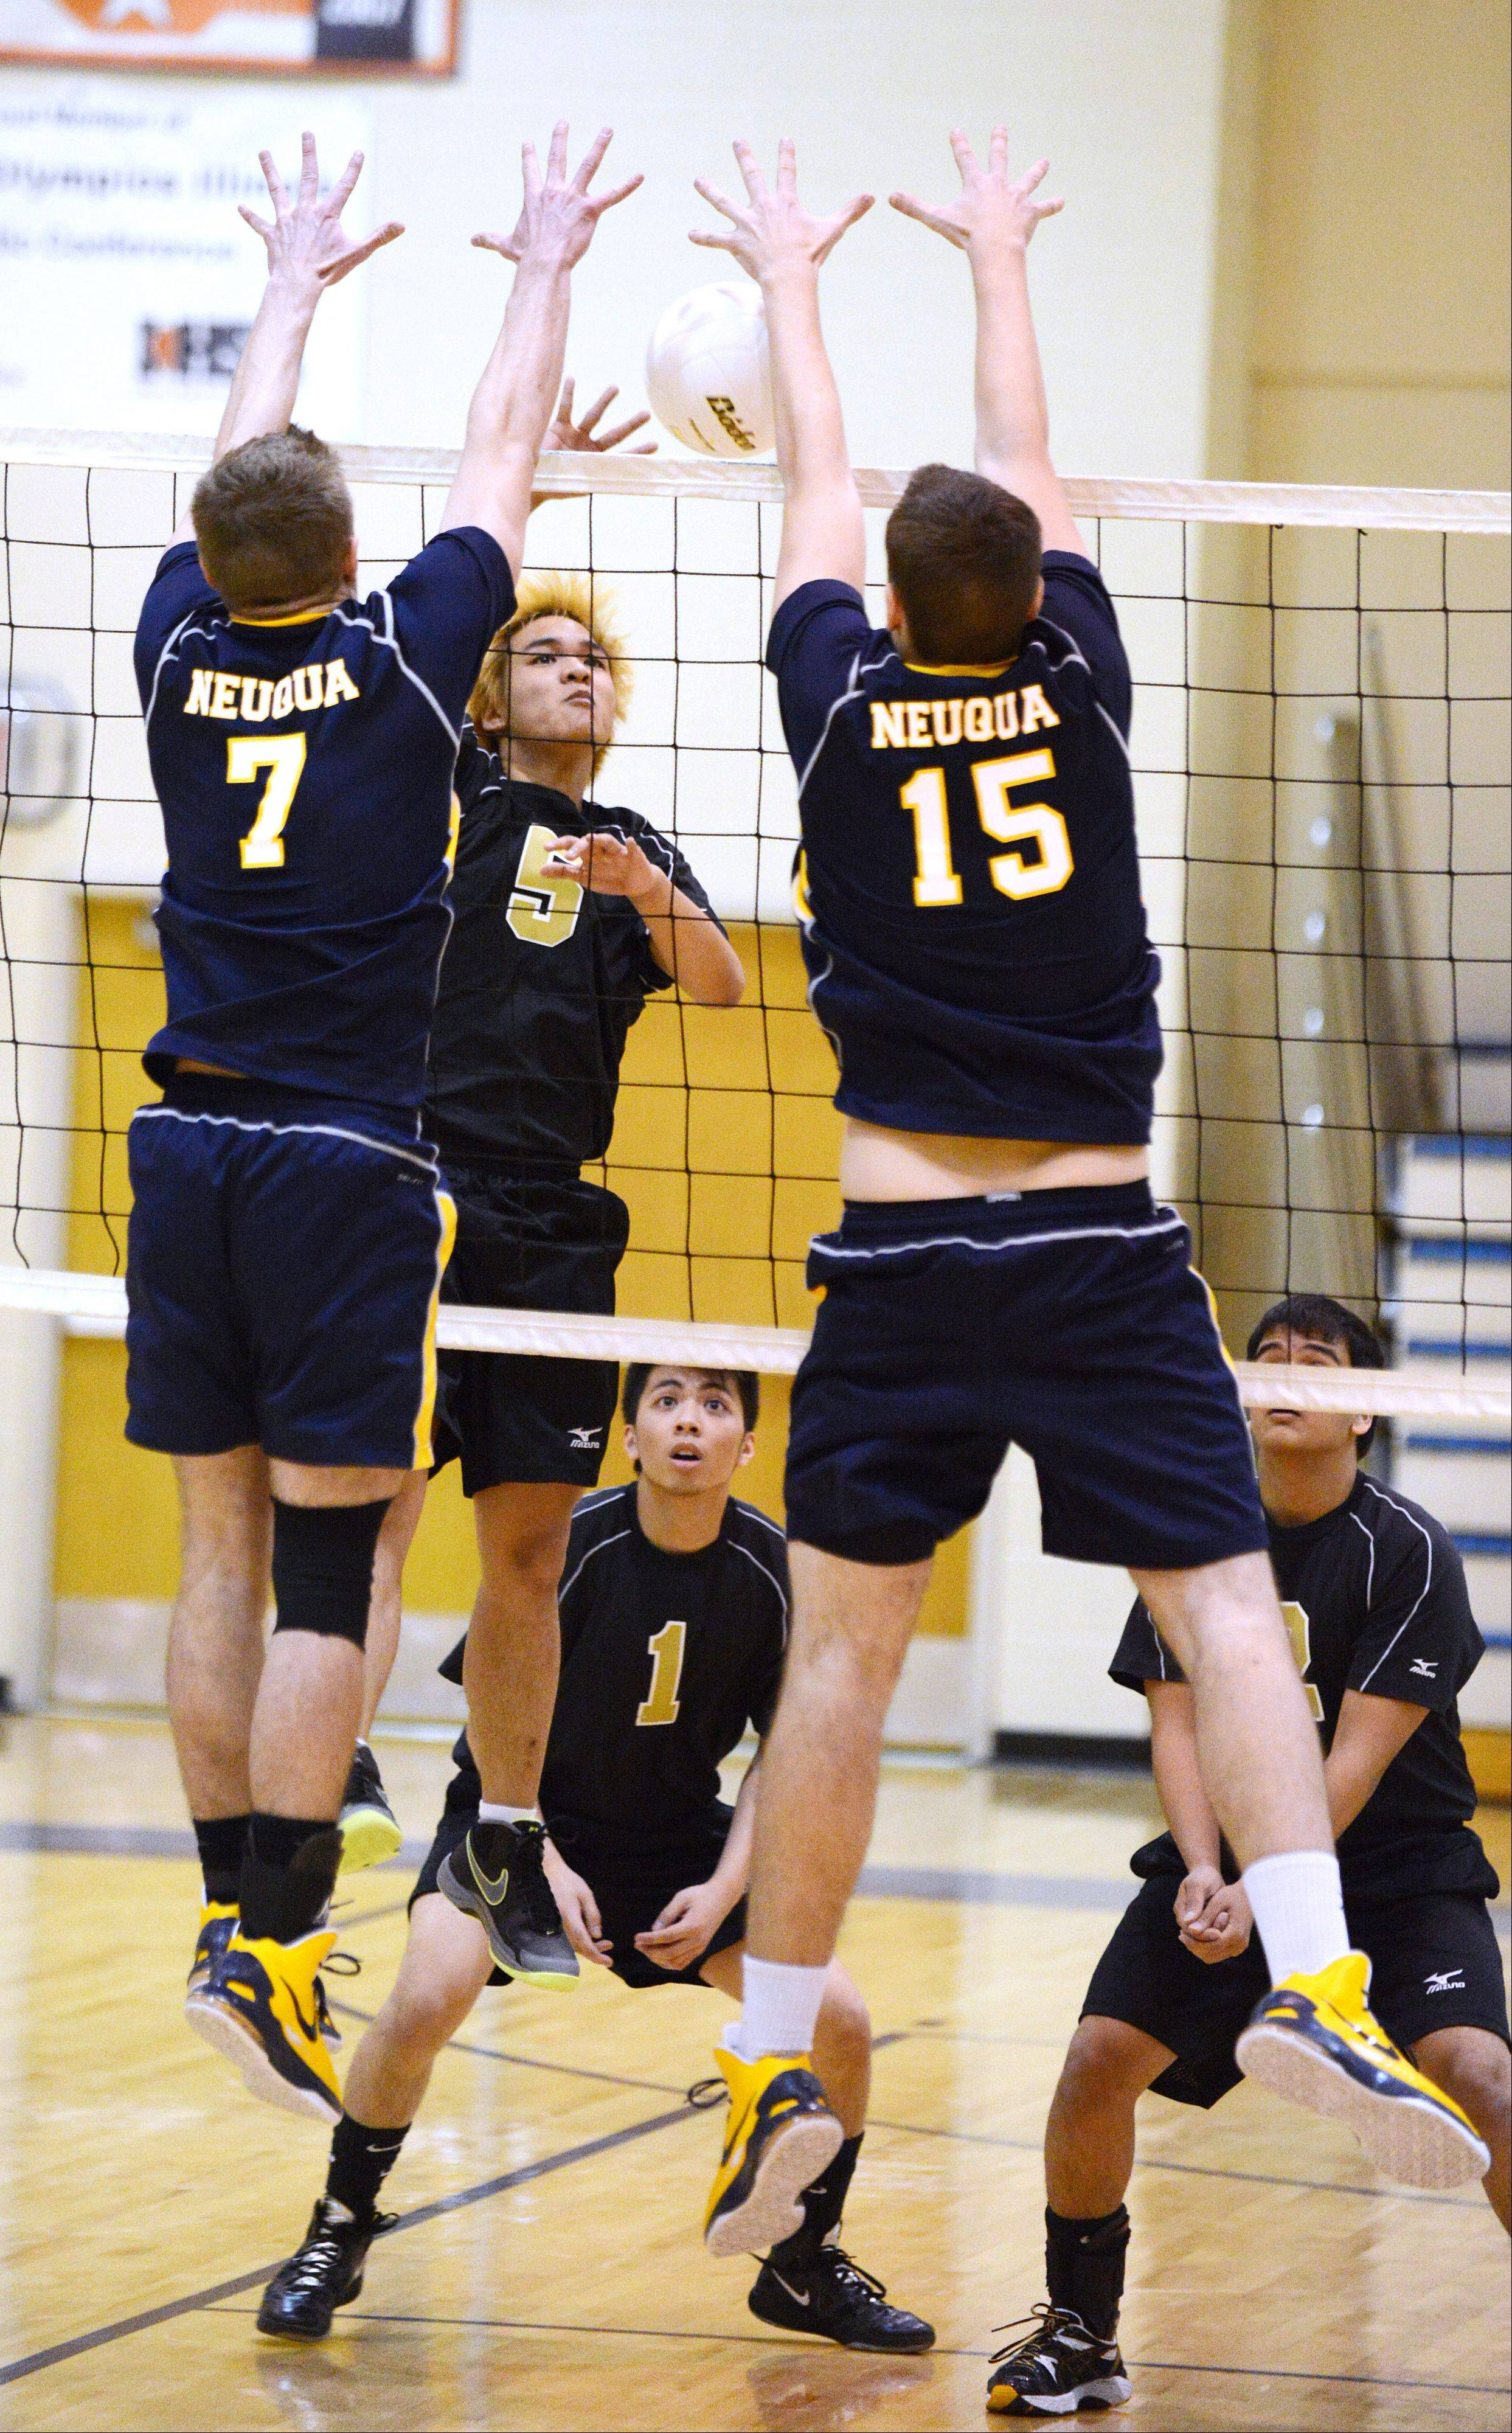 Lester Dela Cruz of Streamwood hits the ball at two Neuqua Vally defenders during the Streamwood at Neuqua Valley boys volleyball game Tuesday. The defenders were Callahan Rafferty,left, and Drew McKissick of Neuqua.